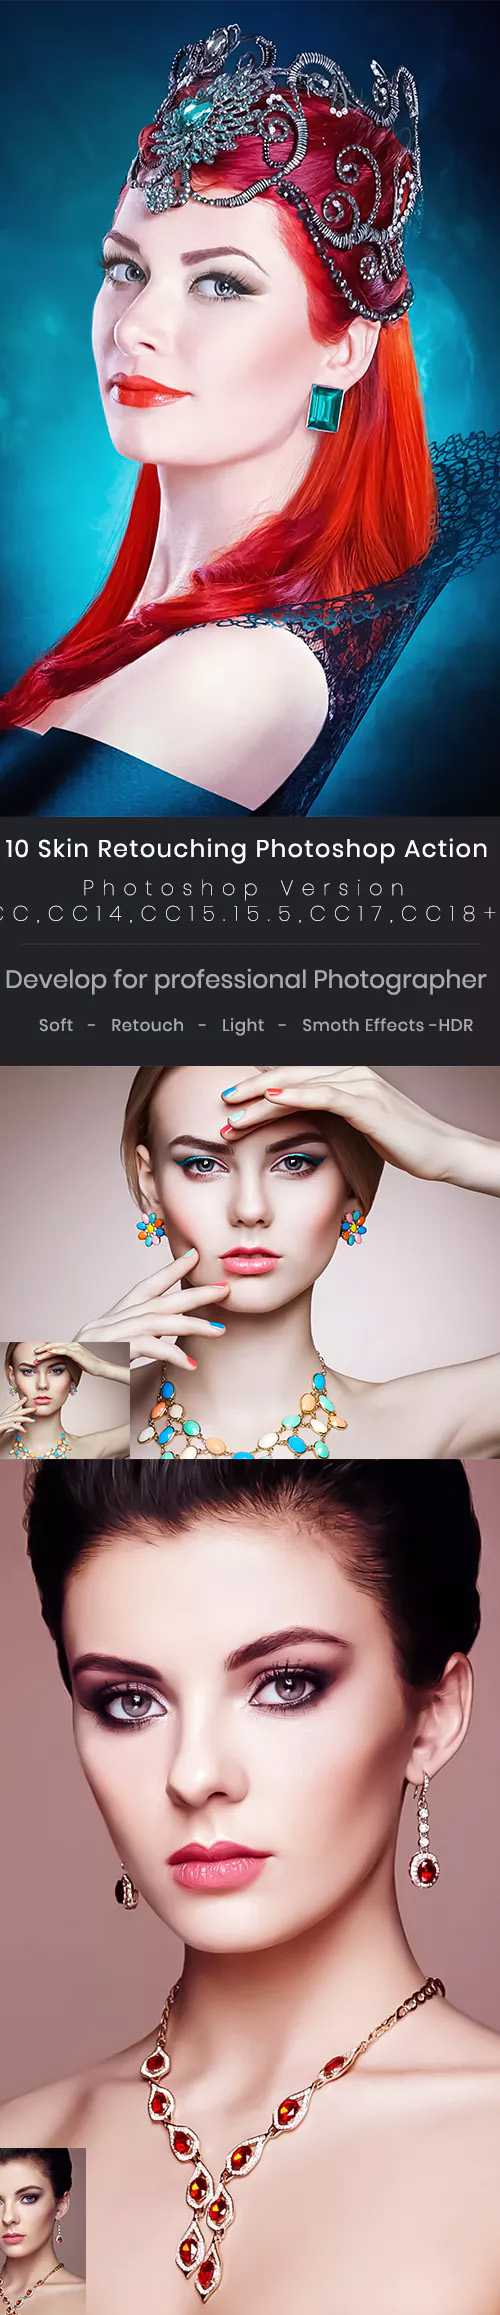 GraphicRiver – 10 Skin Retouching Photoshop Action 23137205